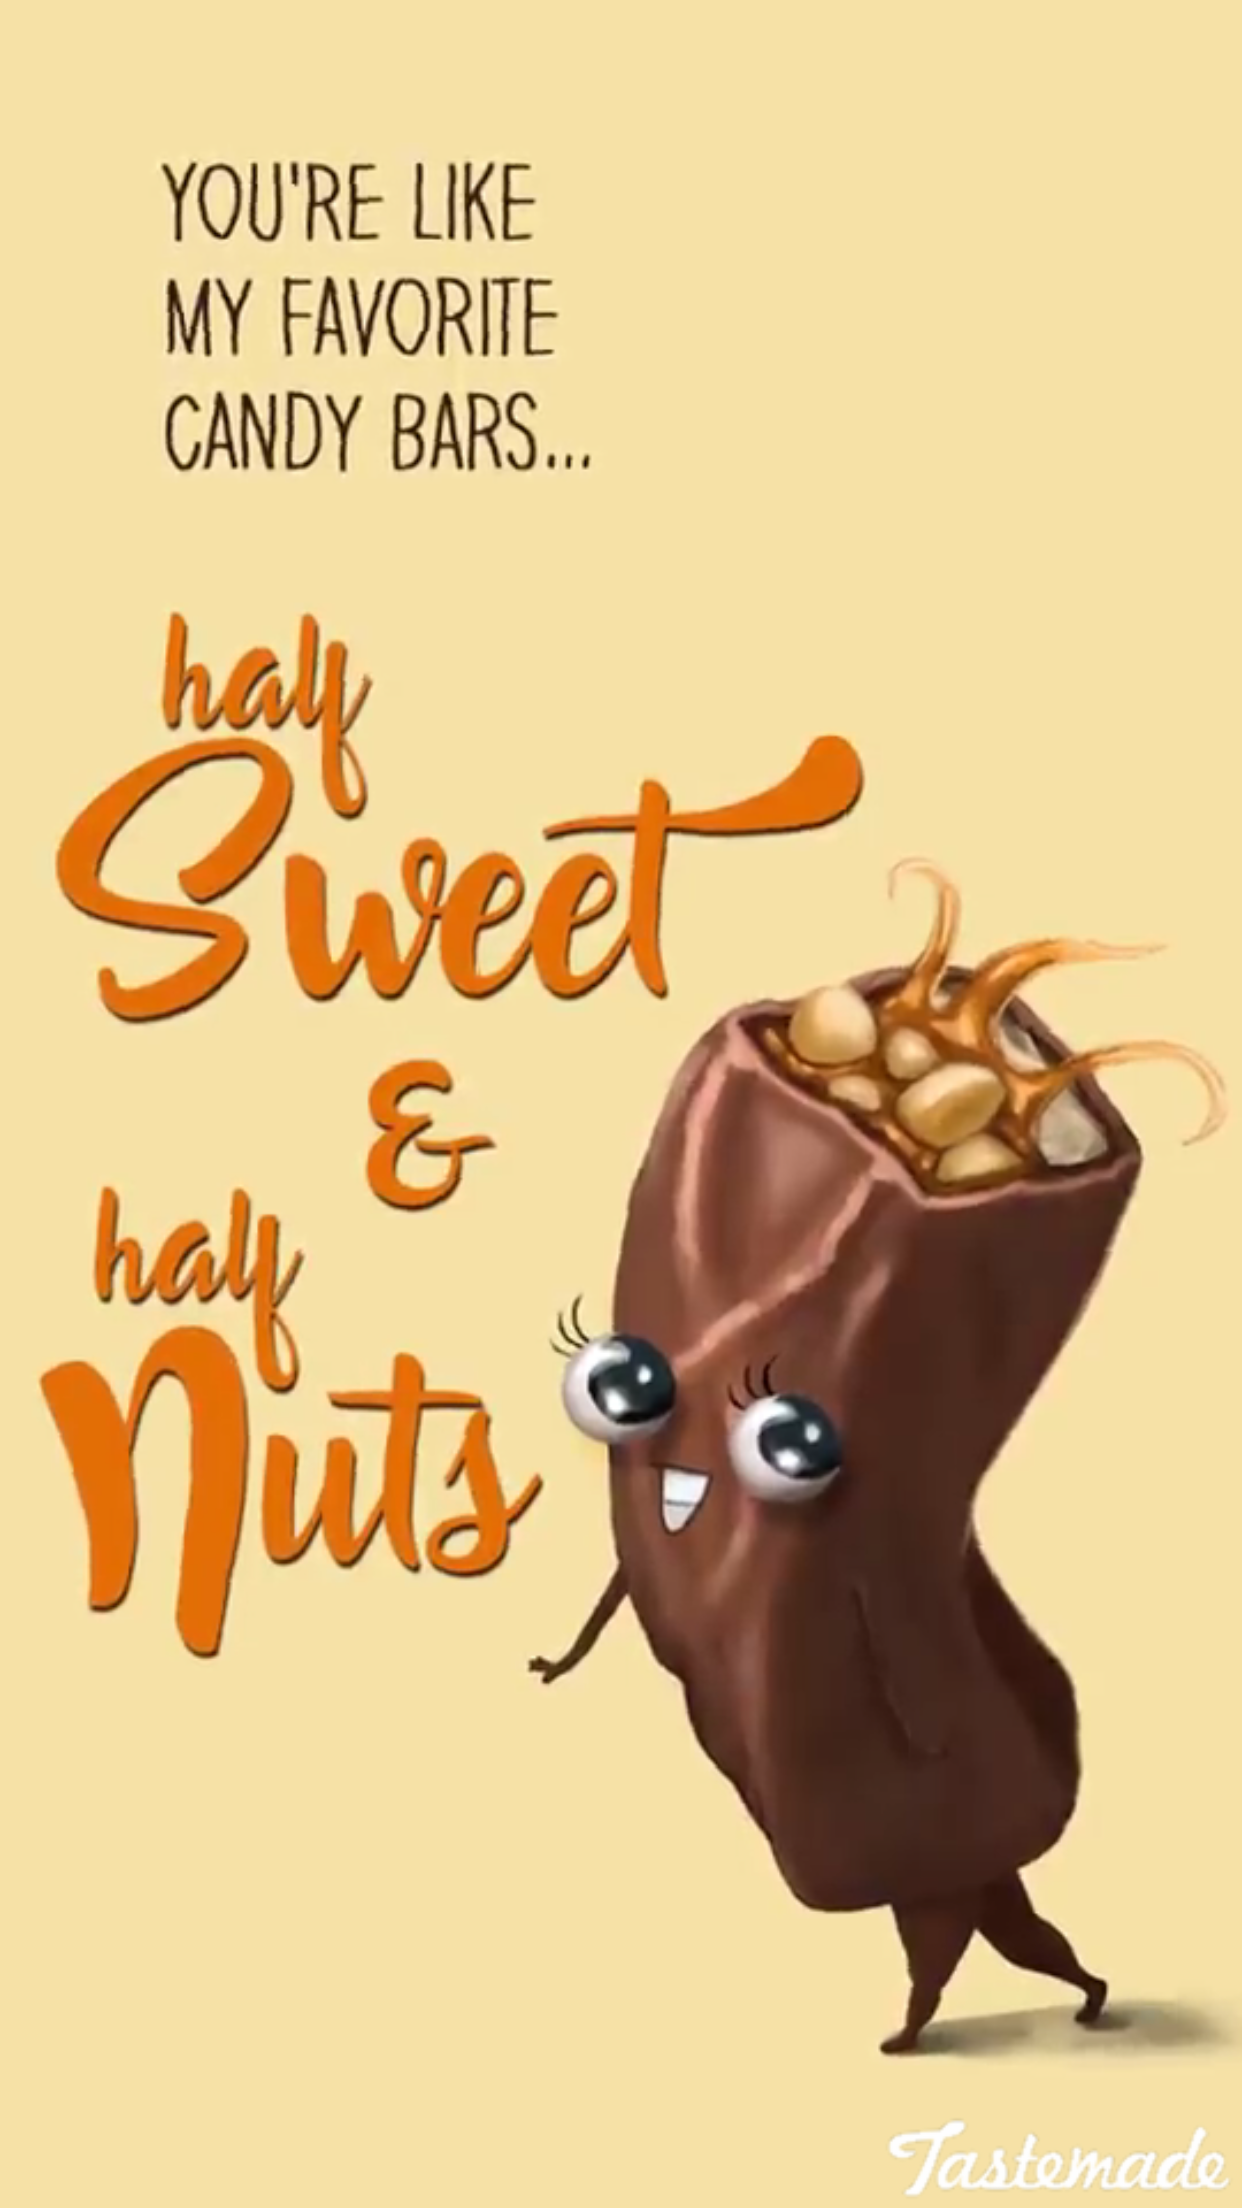 Cute And Yummy Candy Bar Funny Food Puns Punny Puns